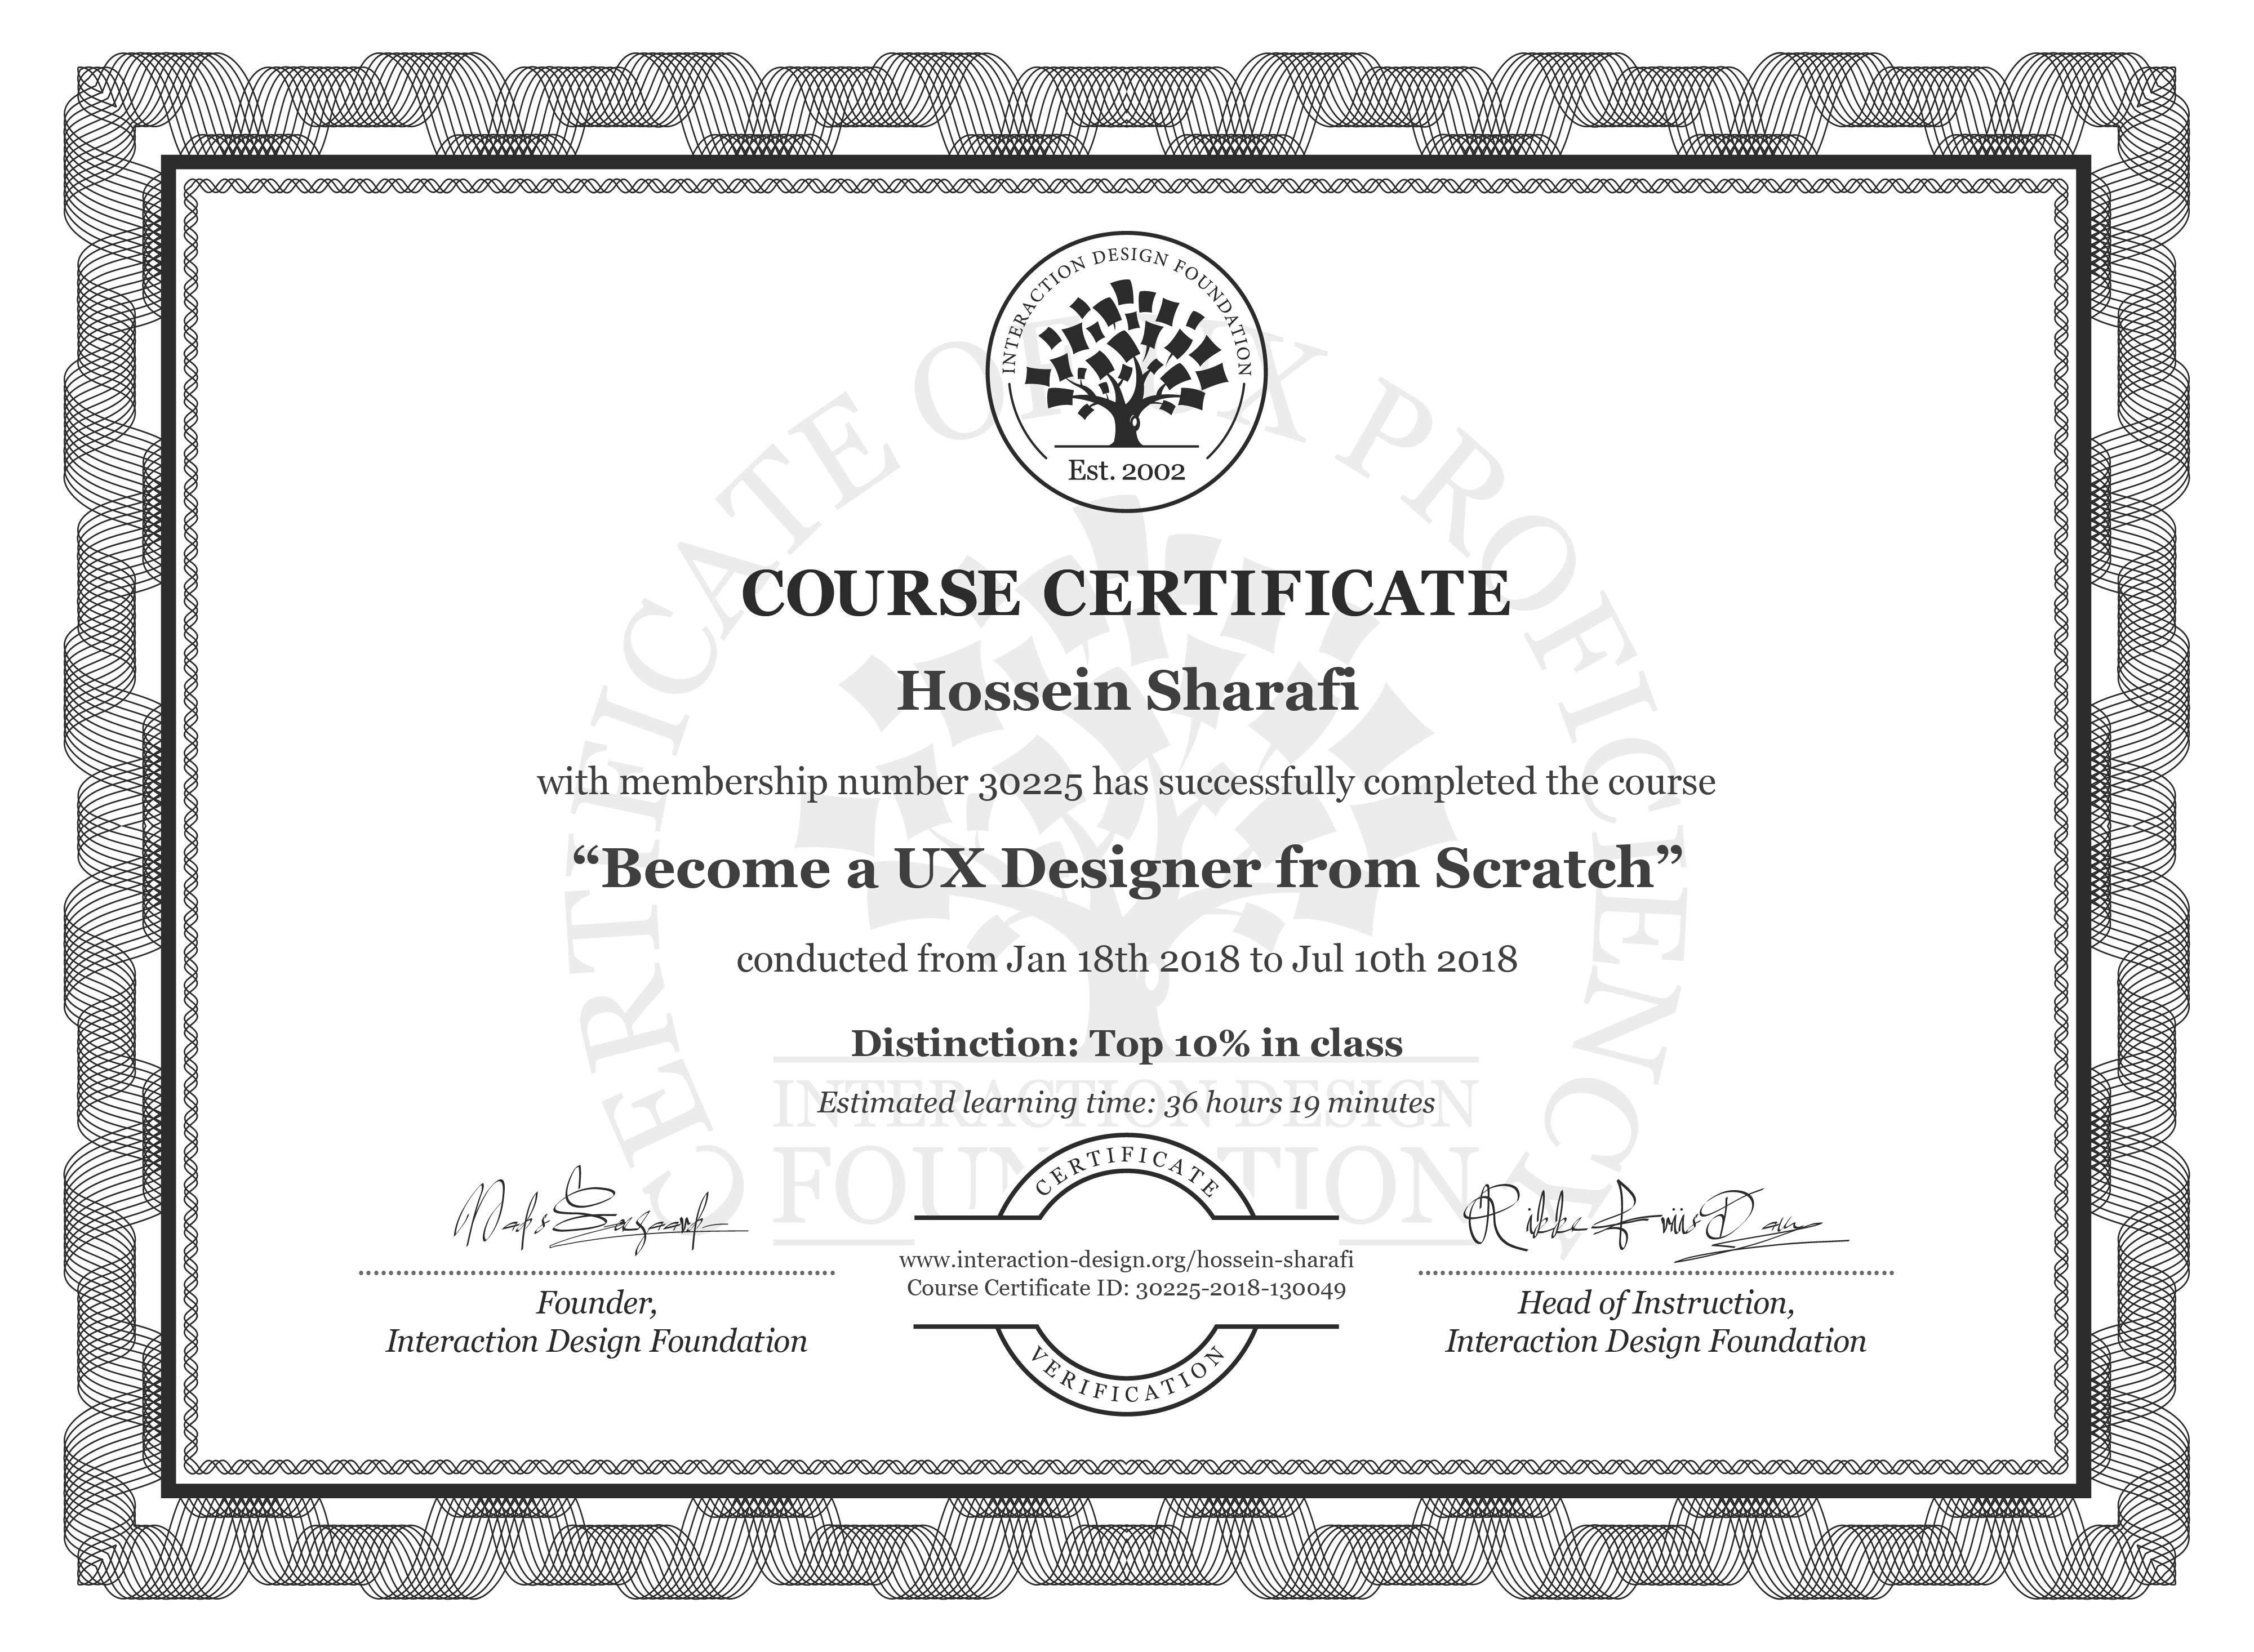 Hossein Sharafi's Course Certificate: Become a UX Designer from Scratch